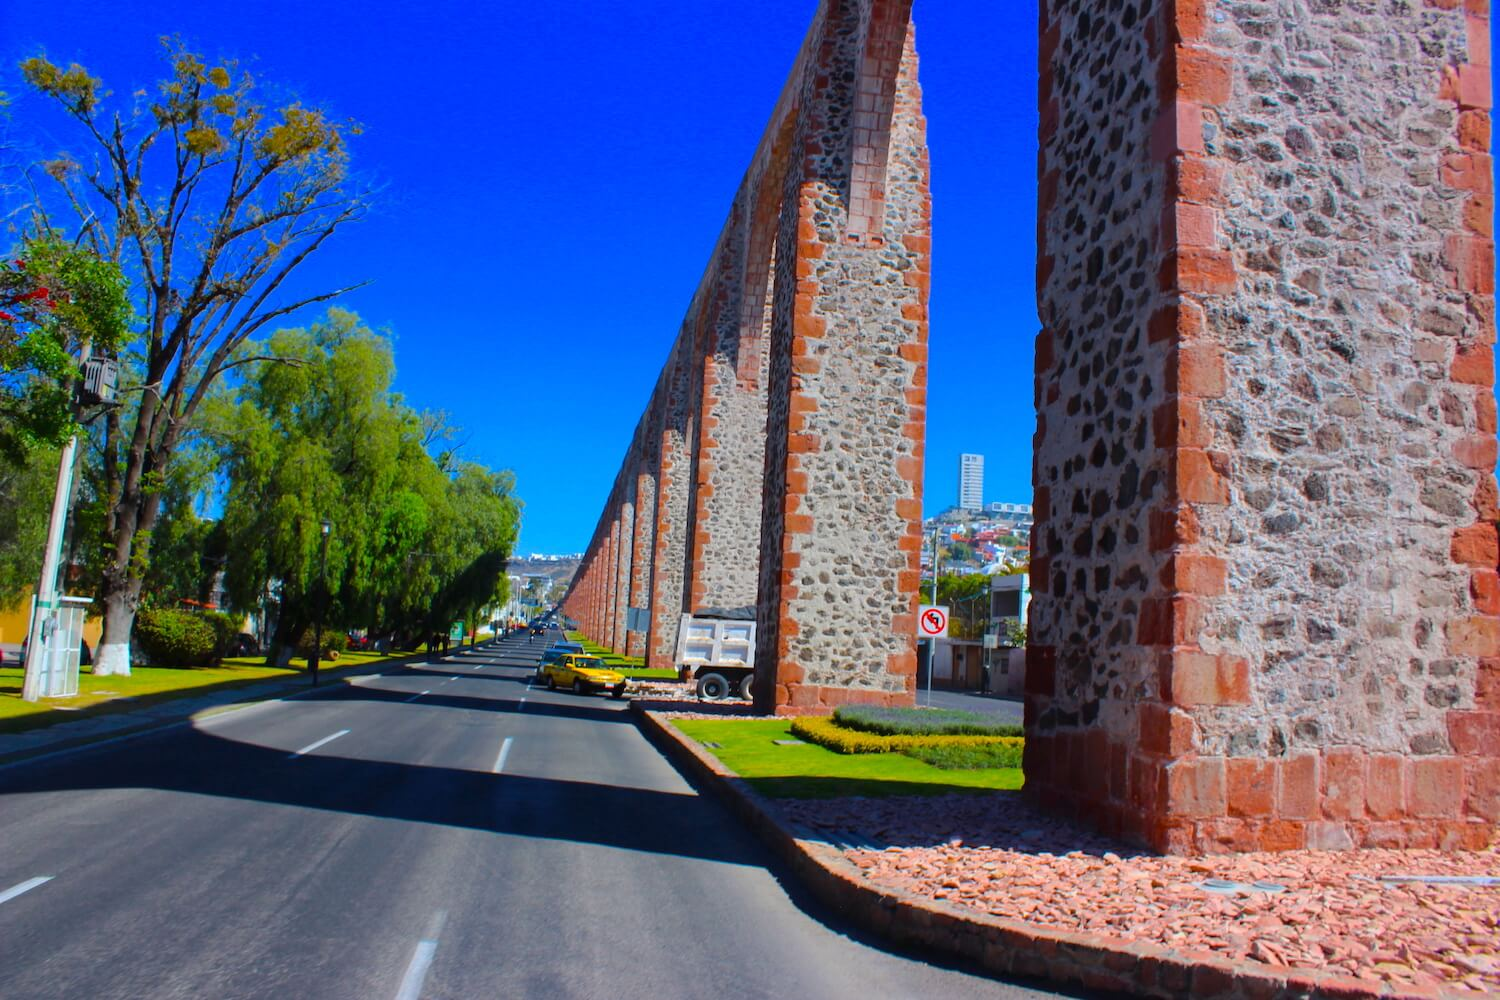 queretaro aqueduct next to the street